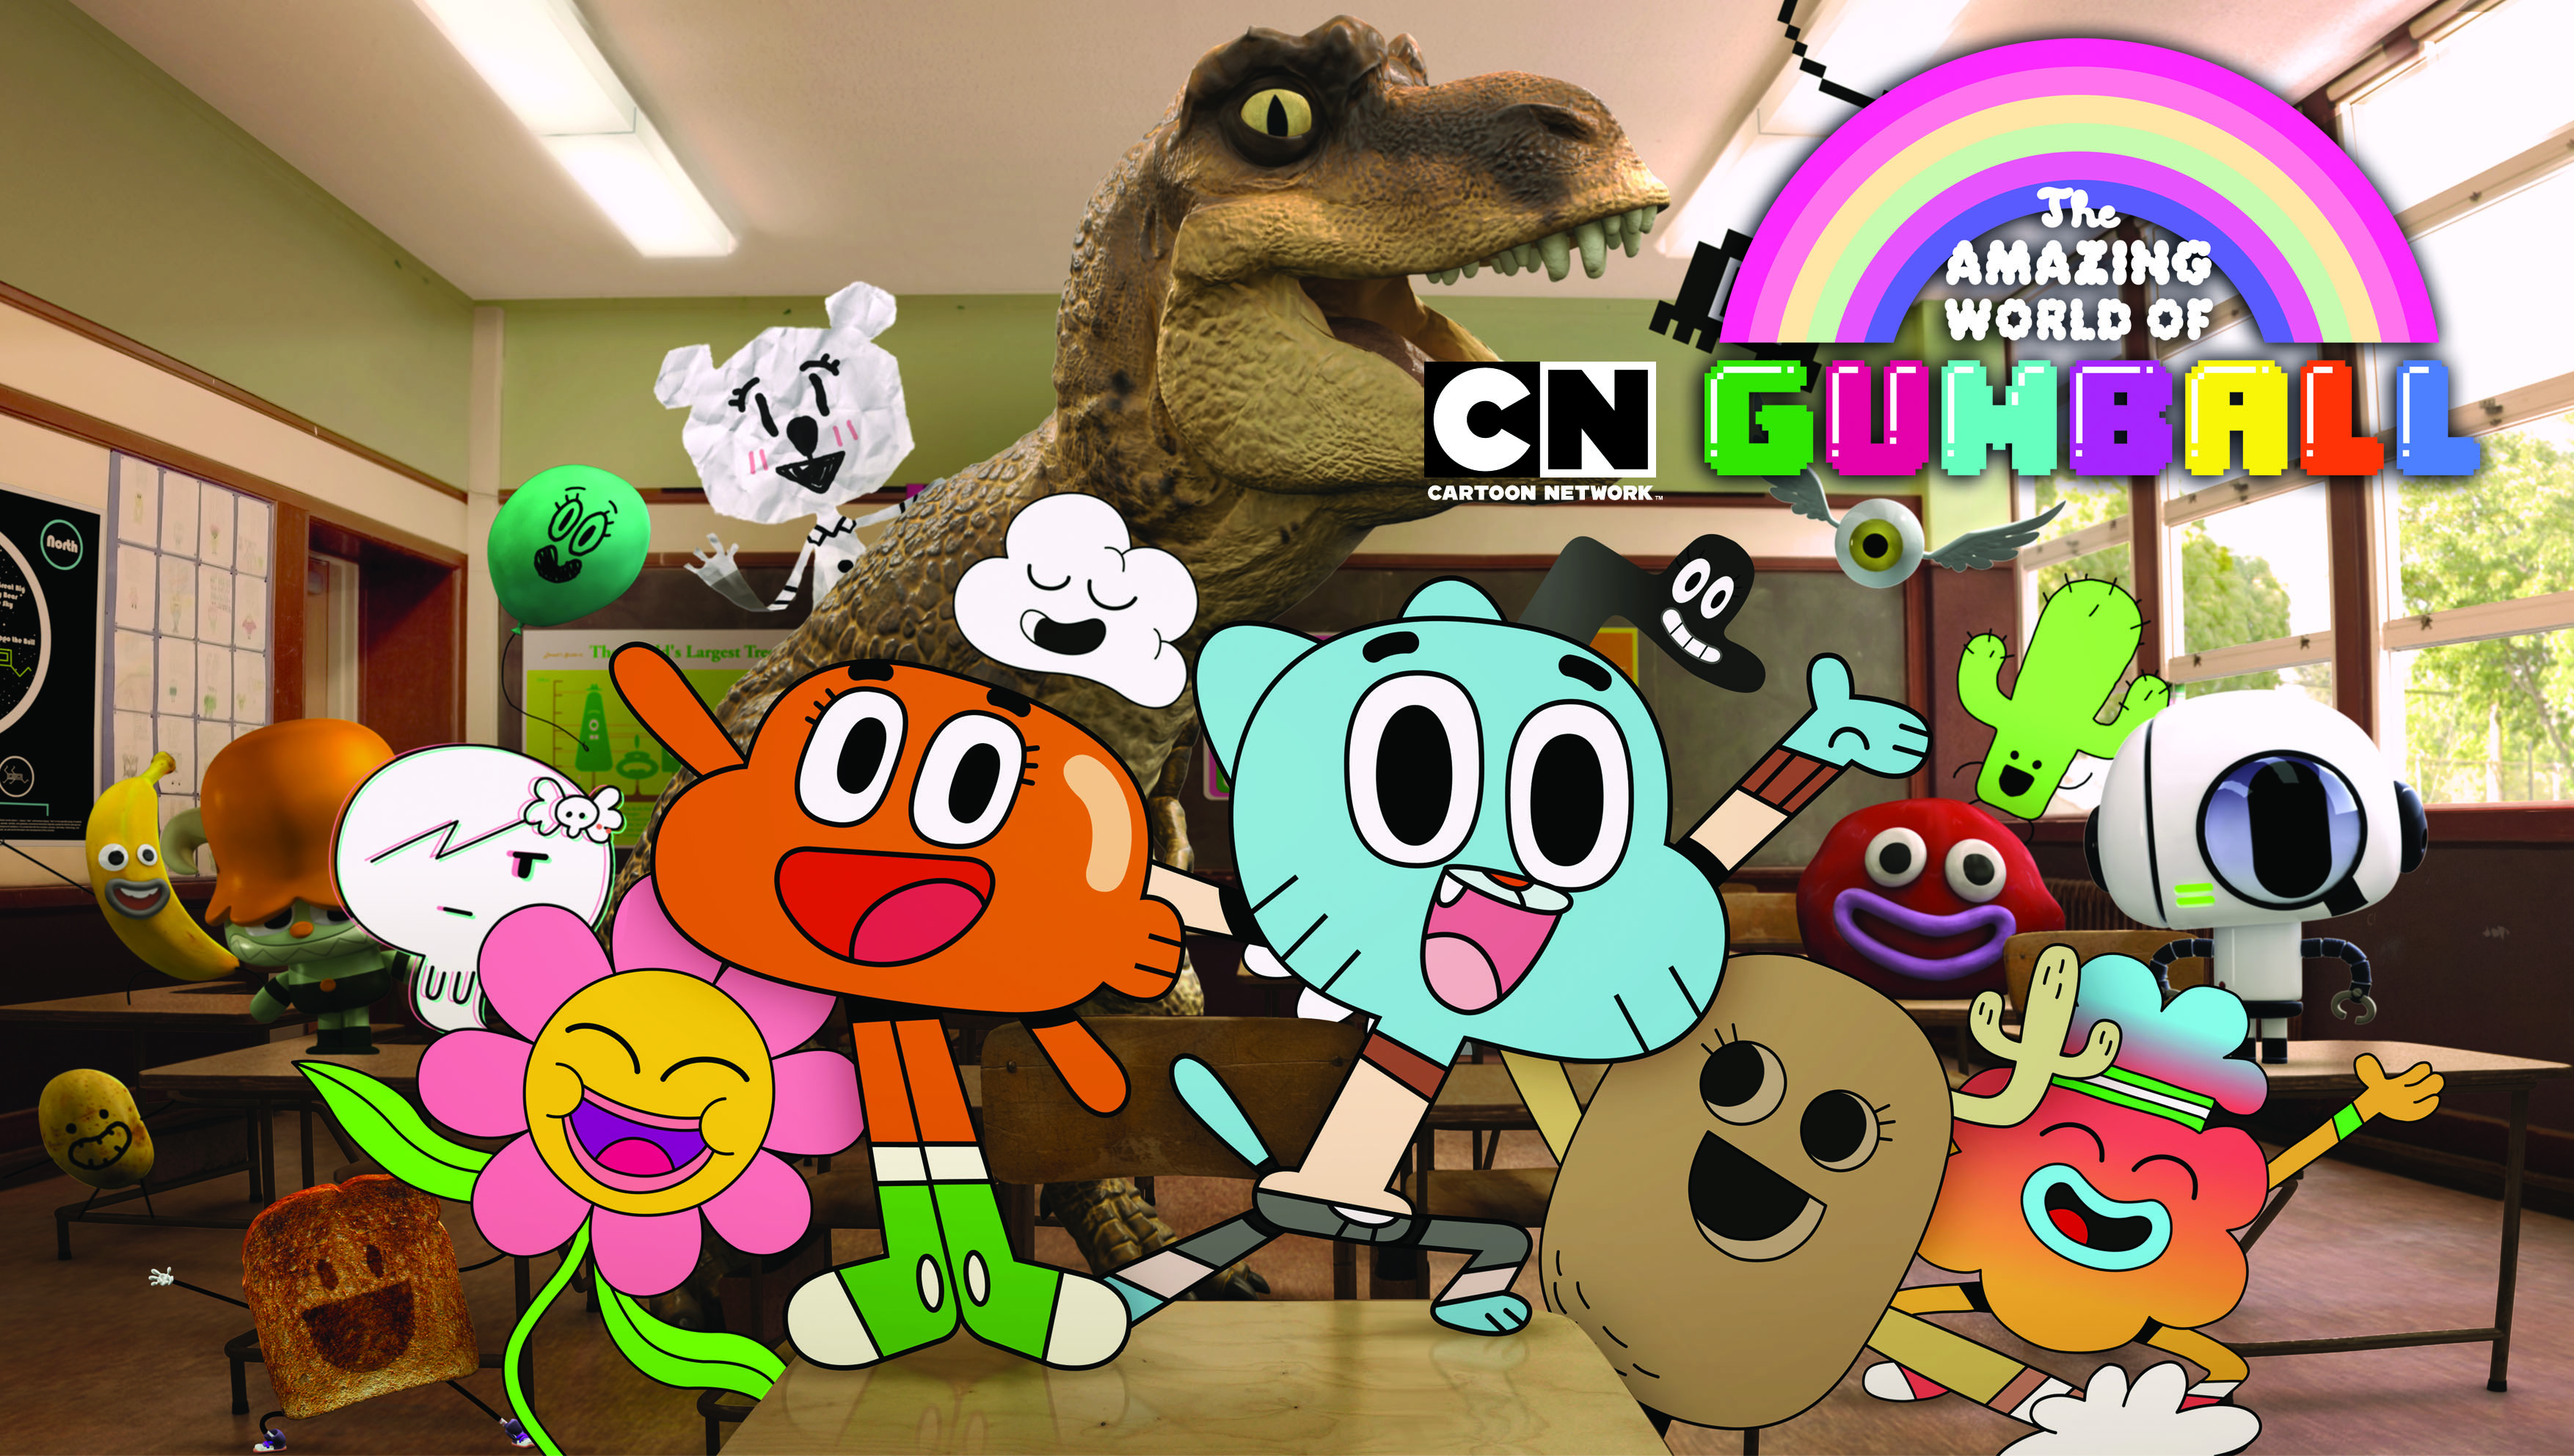 cartoon-network-the-amazing-world-of-gumball